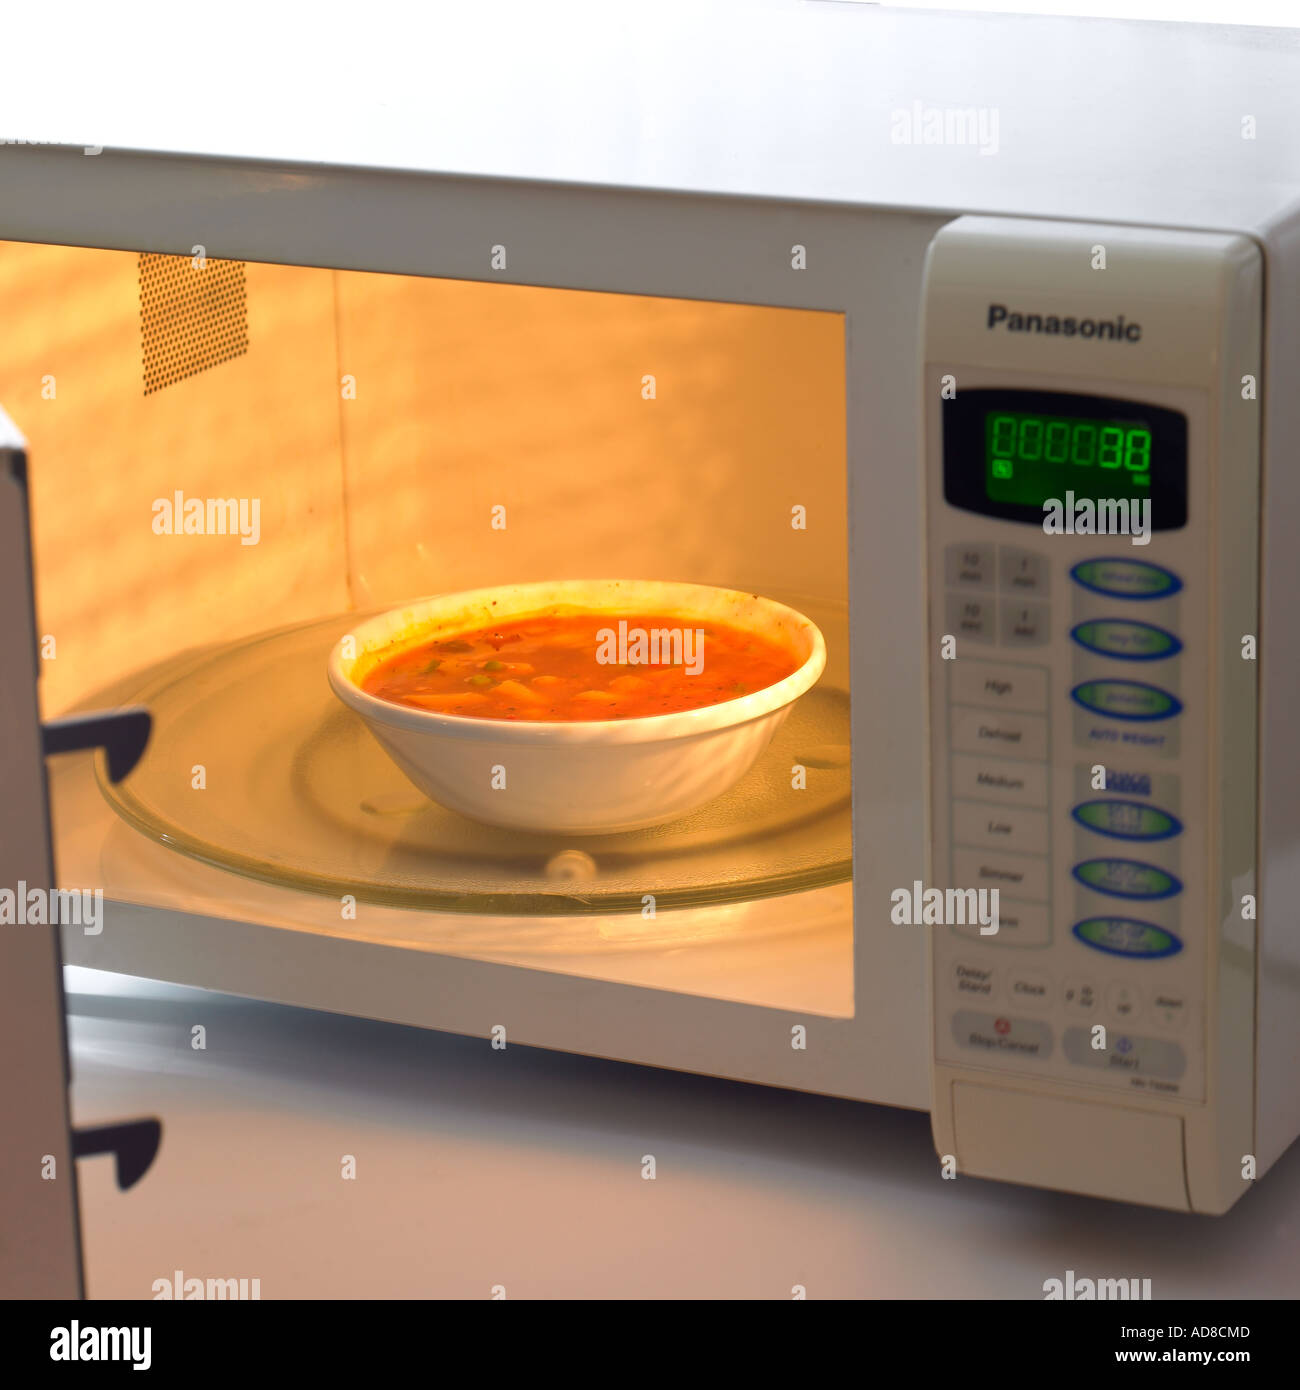 Bowl Of Carrot Or Vegetable Soup Reheated Inside Microwave, Door Open And  Splashed With Heated Soup